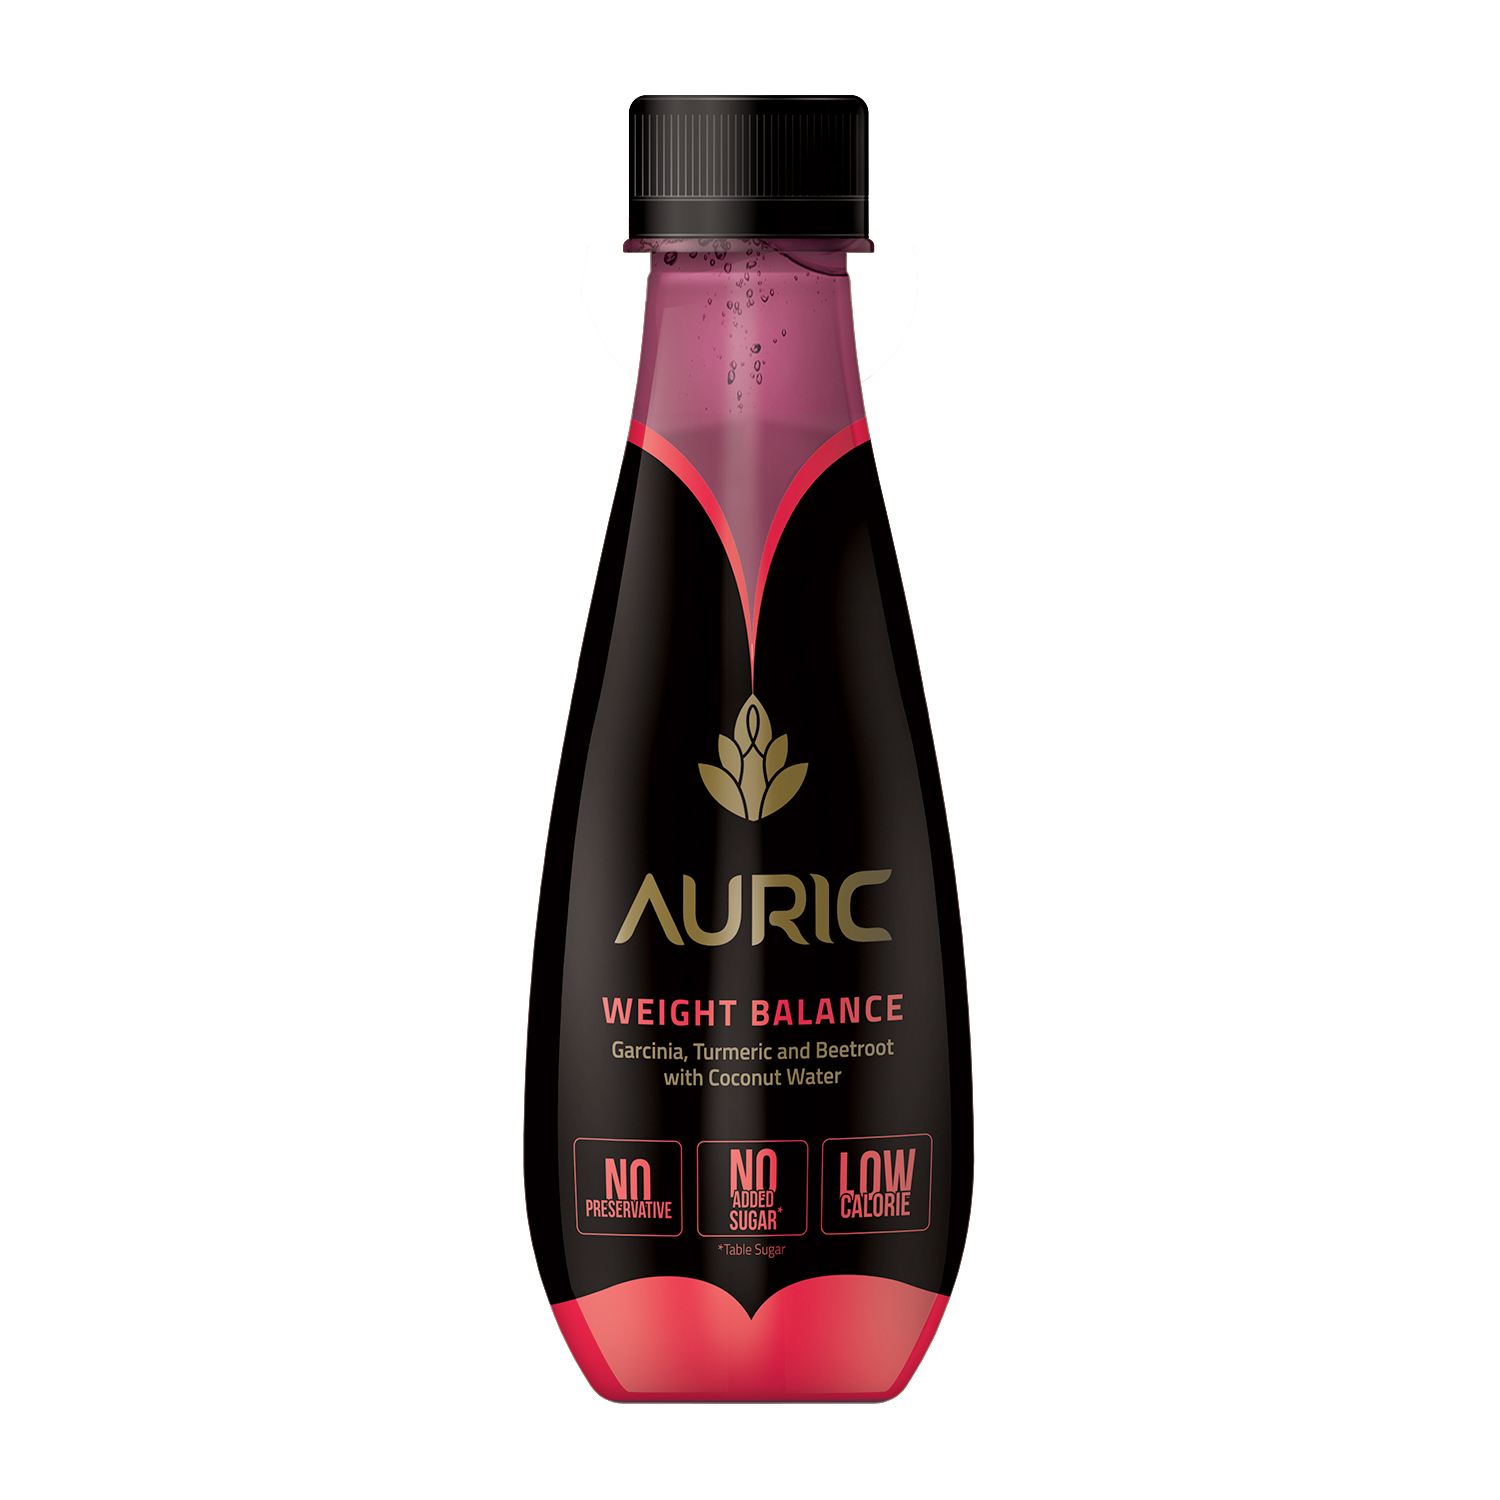 Auric Weight Balance for Increase in Metabolism